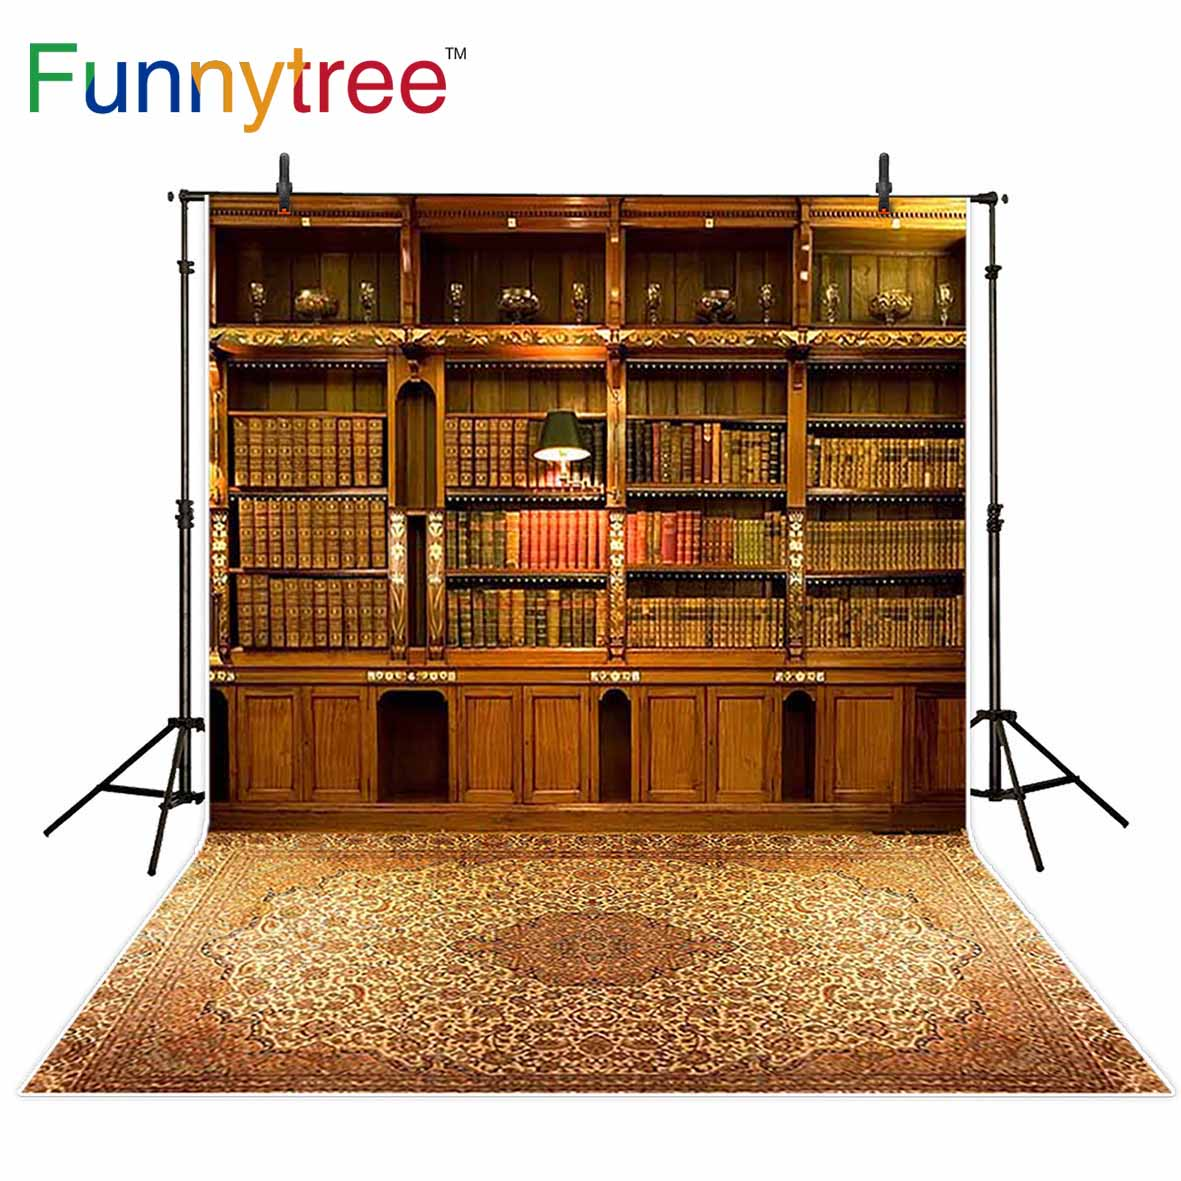 Funnytree Backdrops For Photography Studio Bookshelf Vintage Carpet Library  Luxury Wood Background Photobooth Photocall In Background From Consumer ...